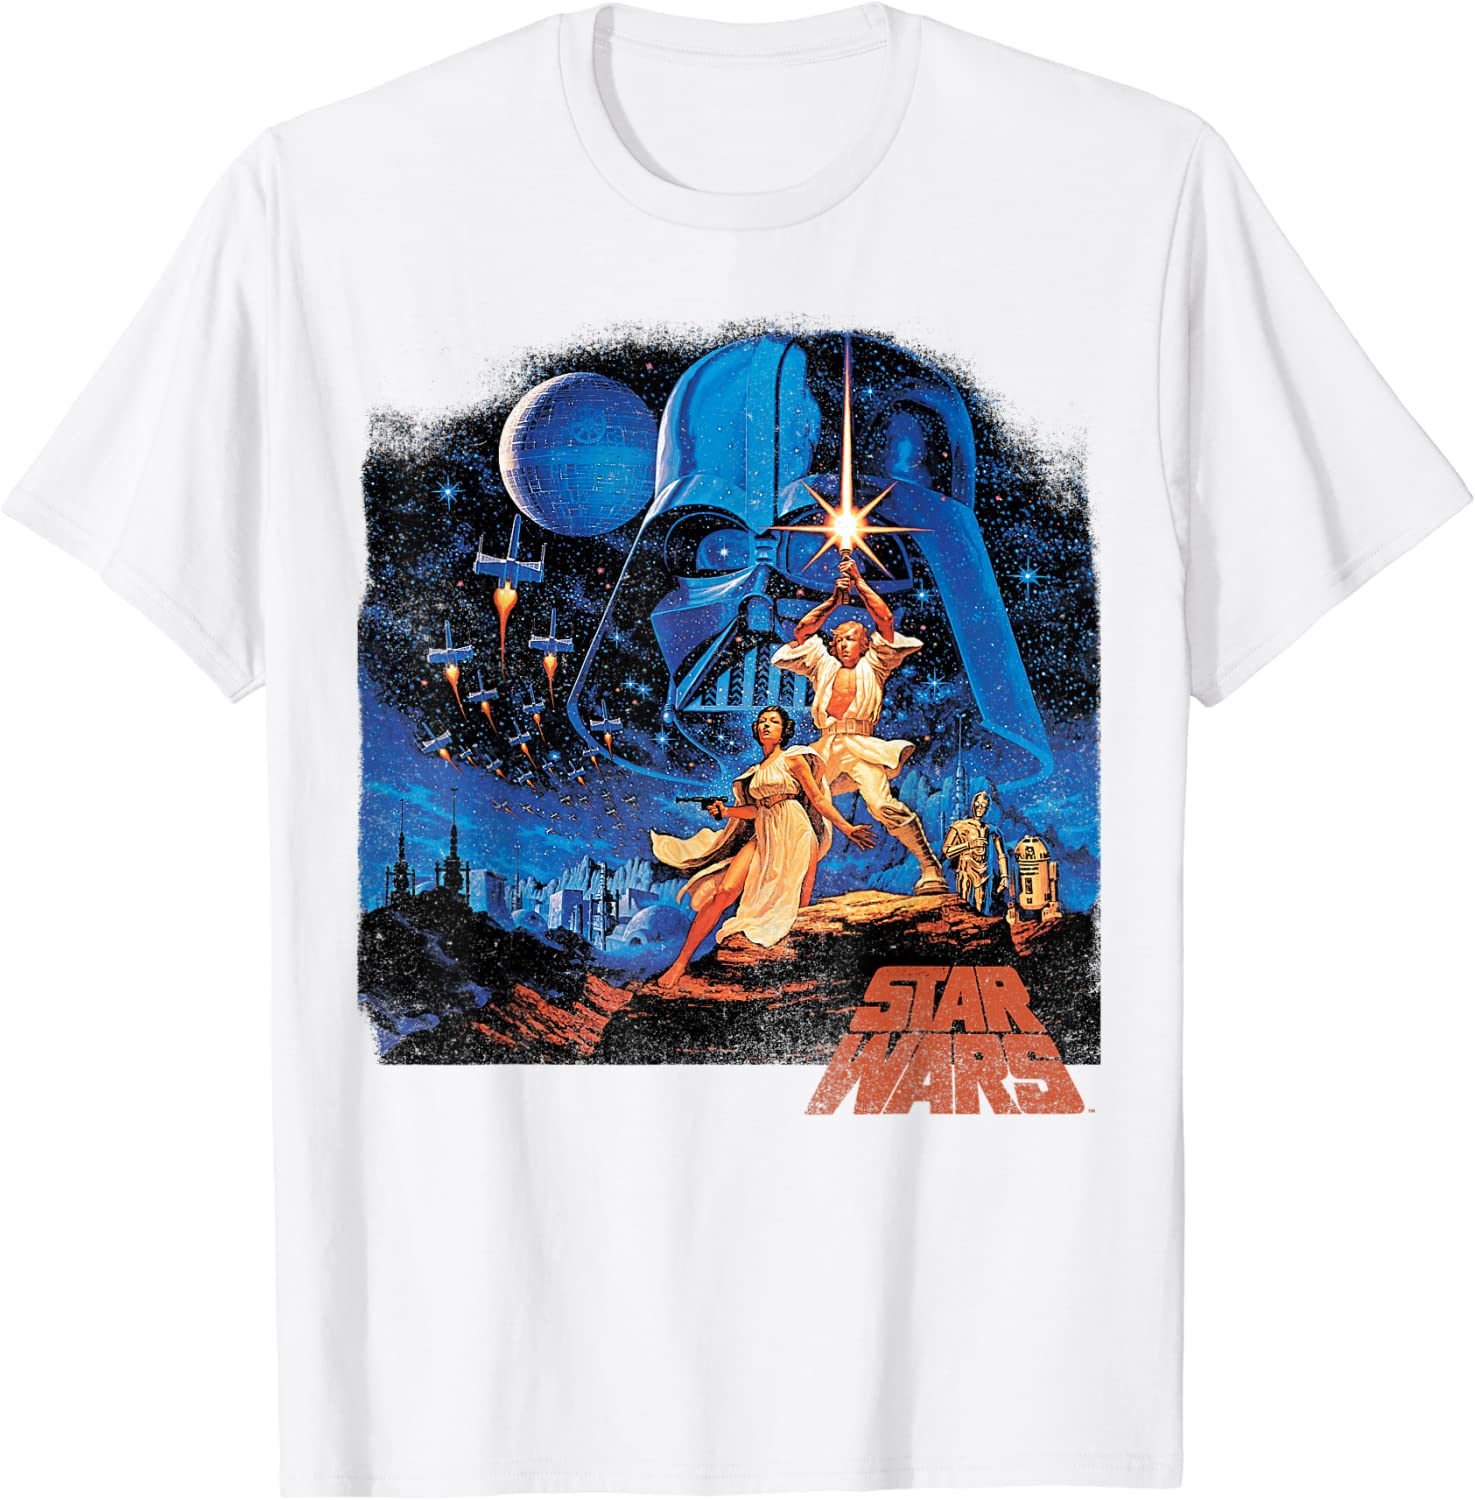 Star Wars A New Hope Classic Vintage Poster T-Shirt C2